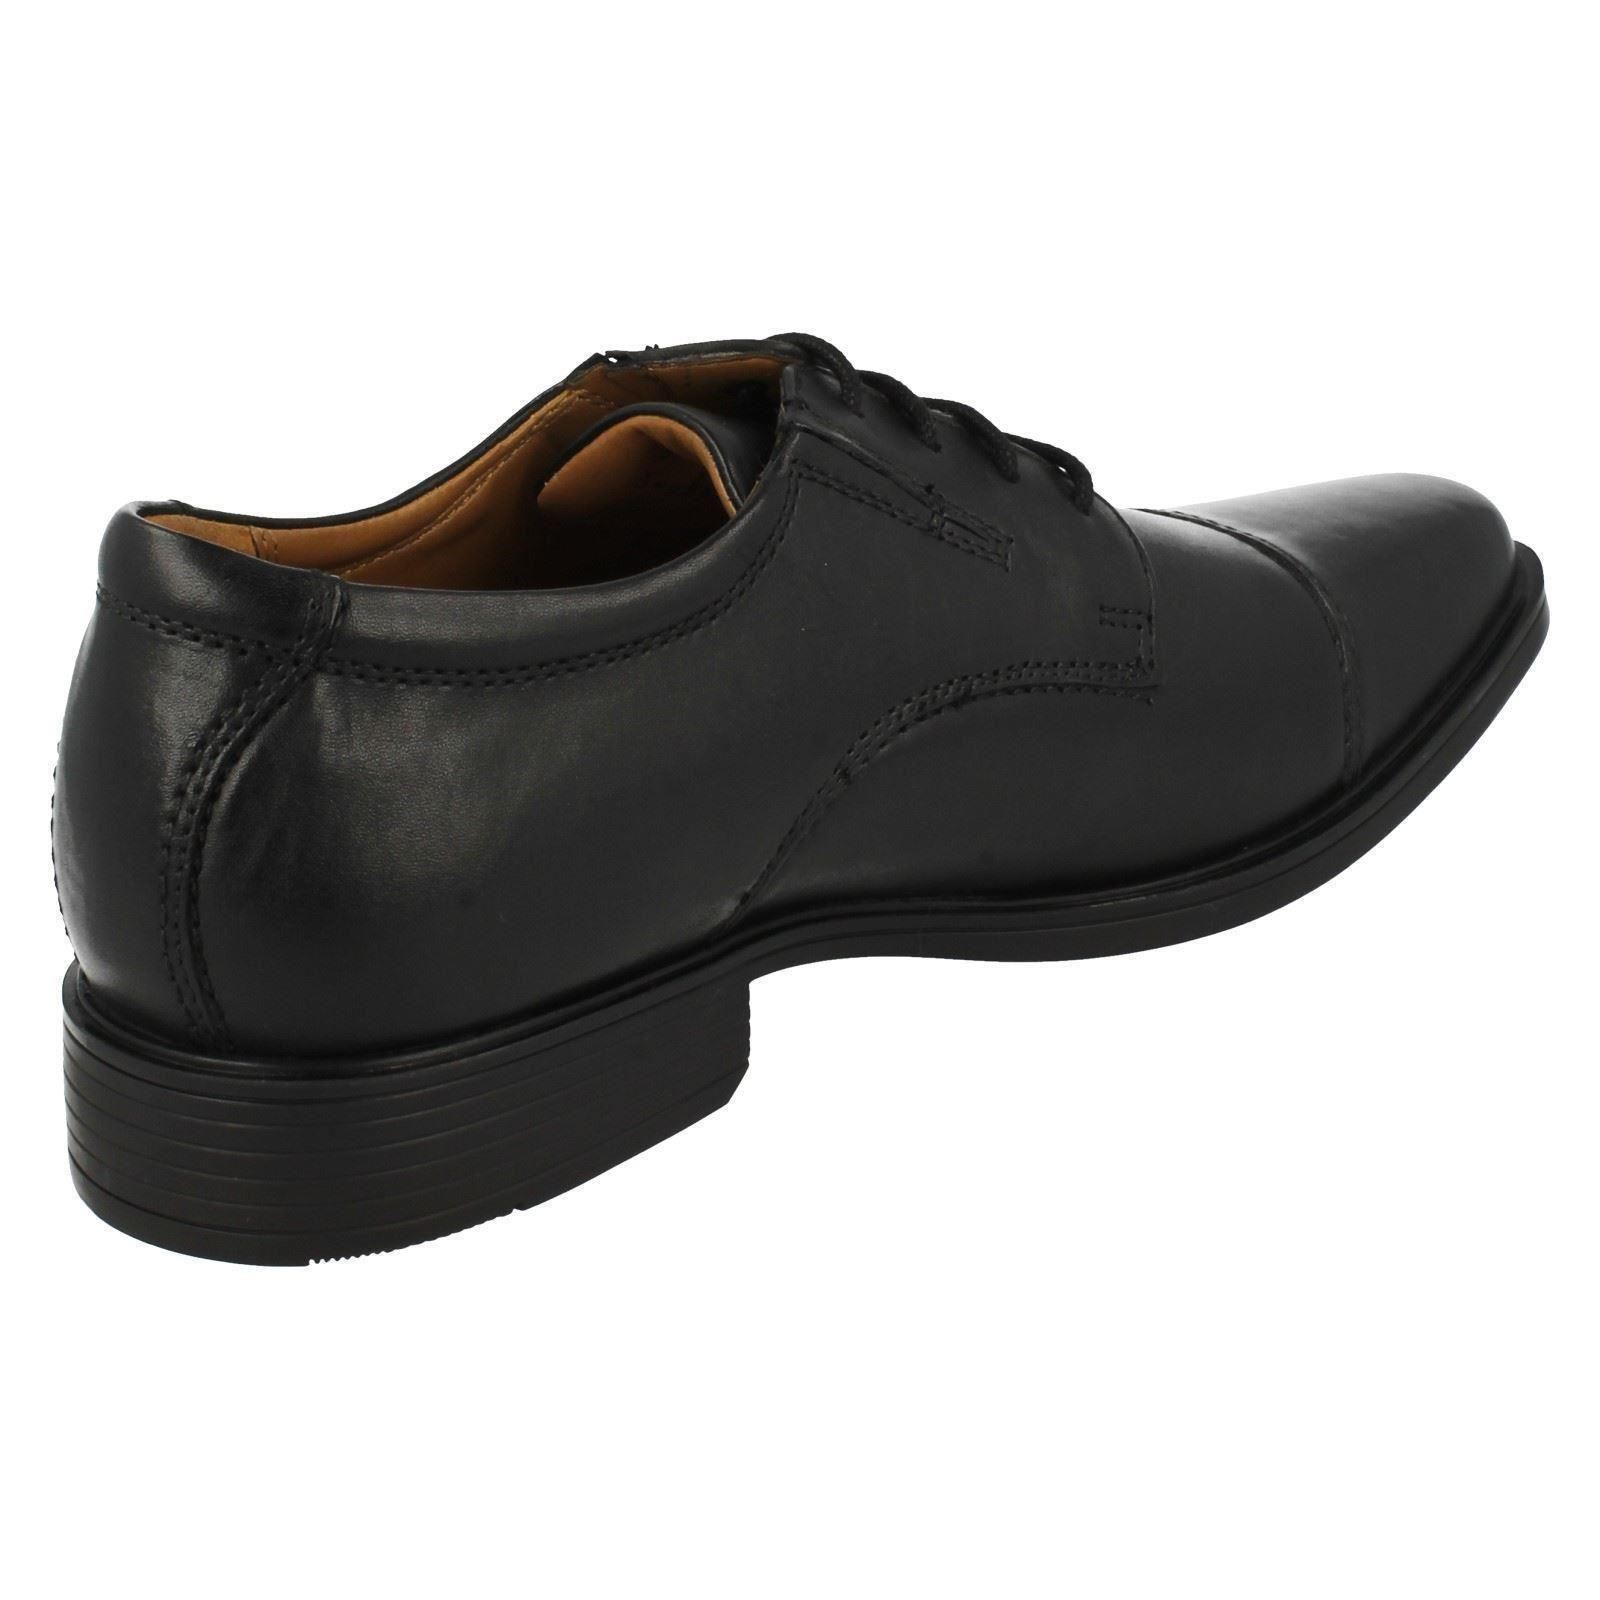 Mens-Clarks-Formal-Lace-Up-Shoes-Tilden-Cap thumbnail 4